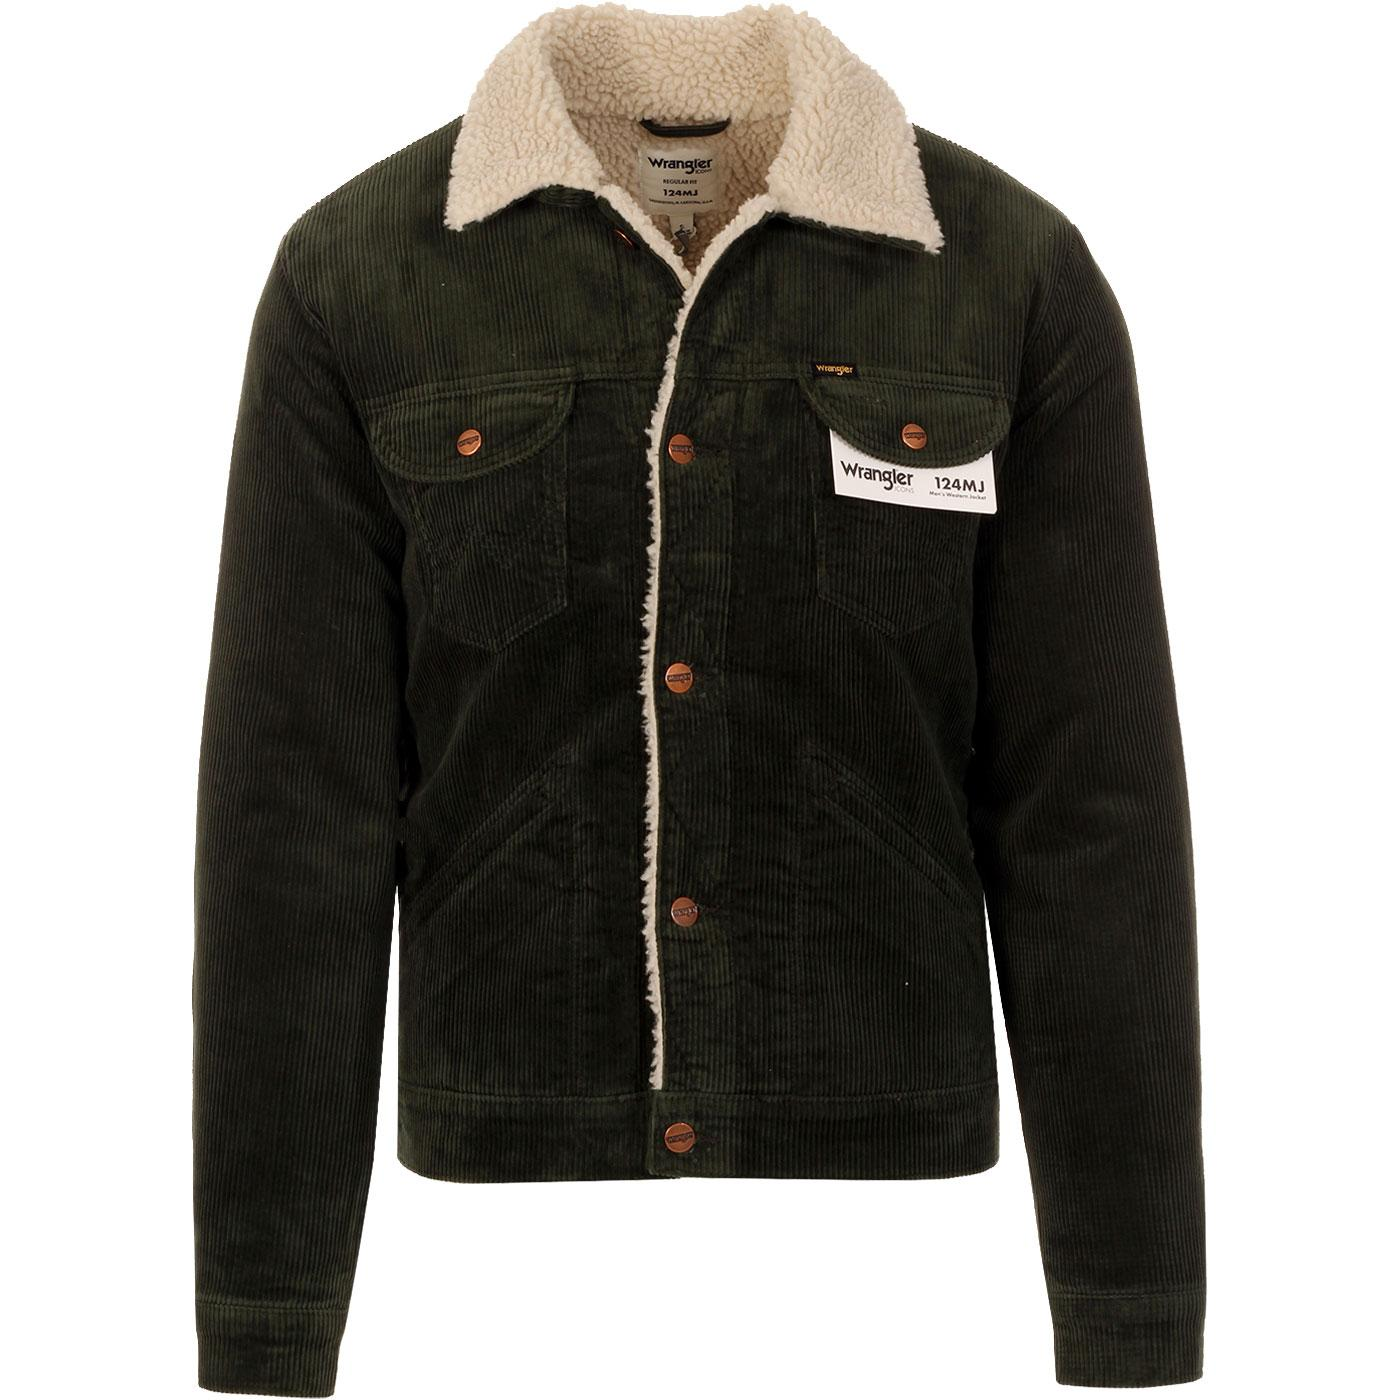 WRANGLER Icons 124MJ Retro Cord Sherpa Jacket